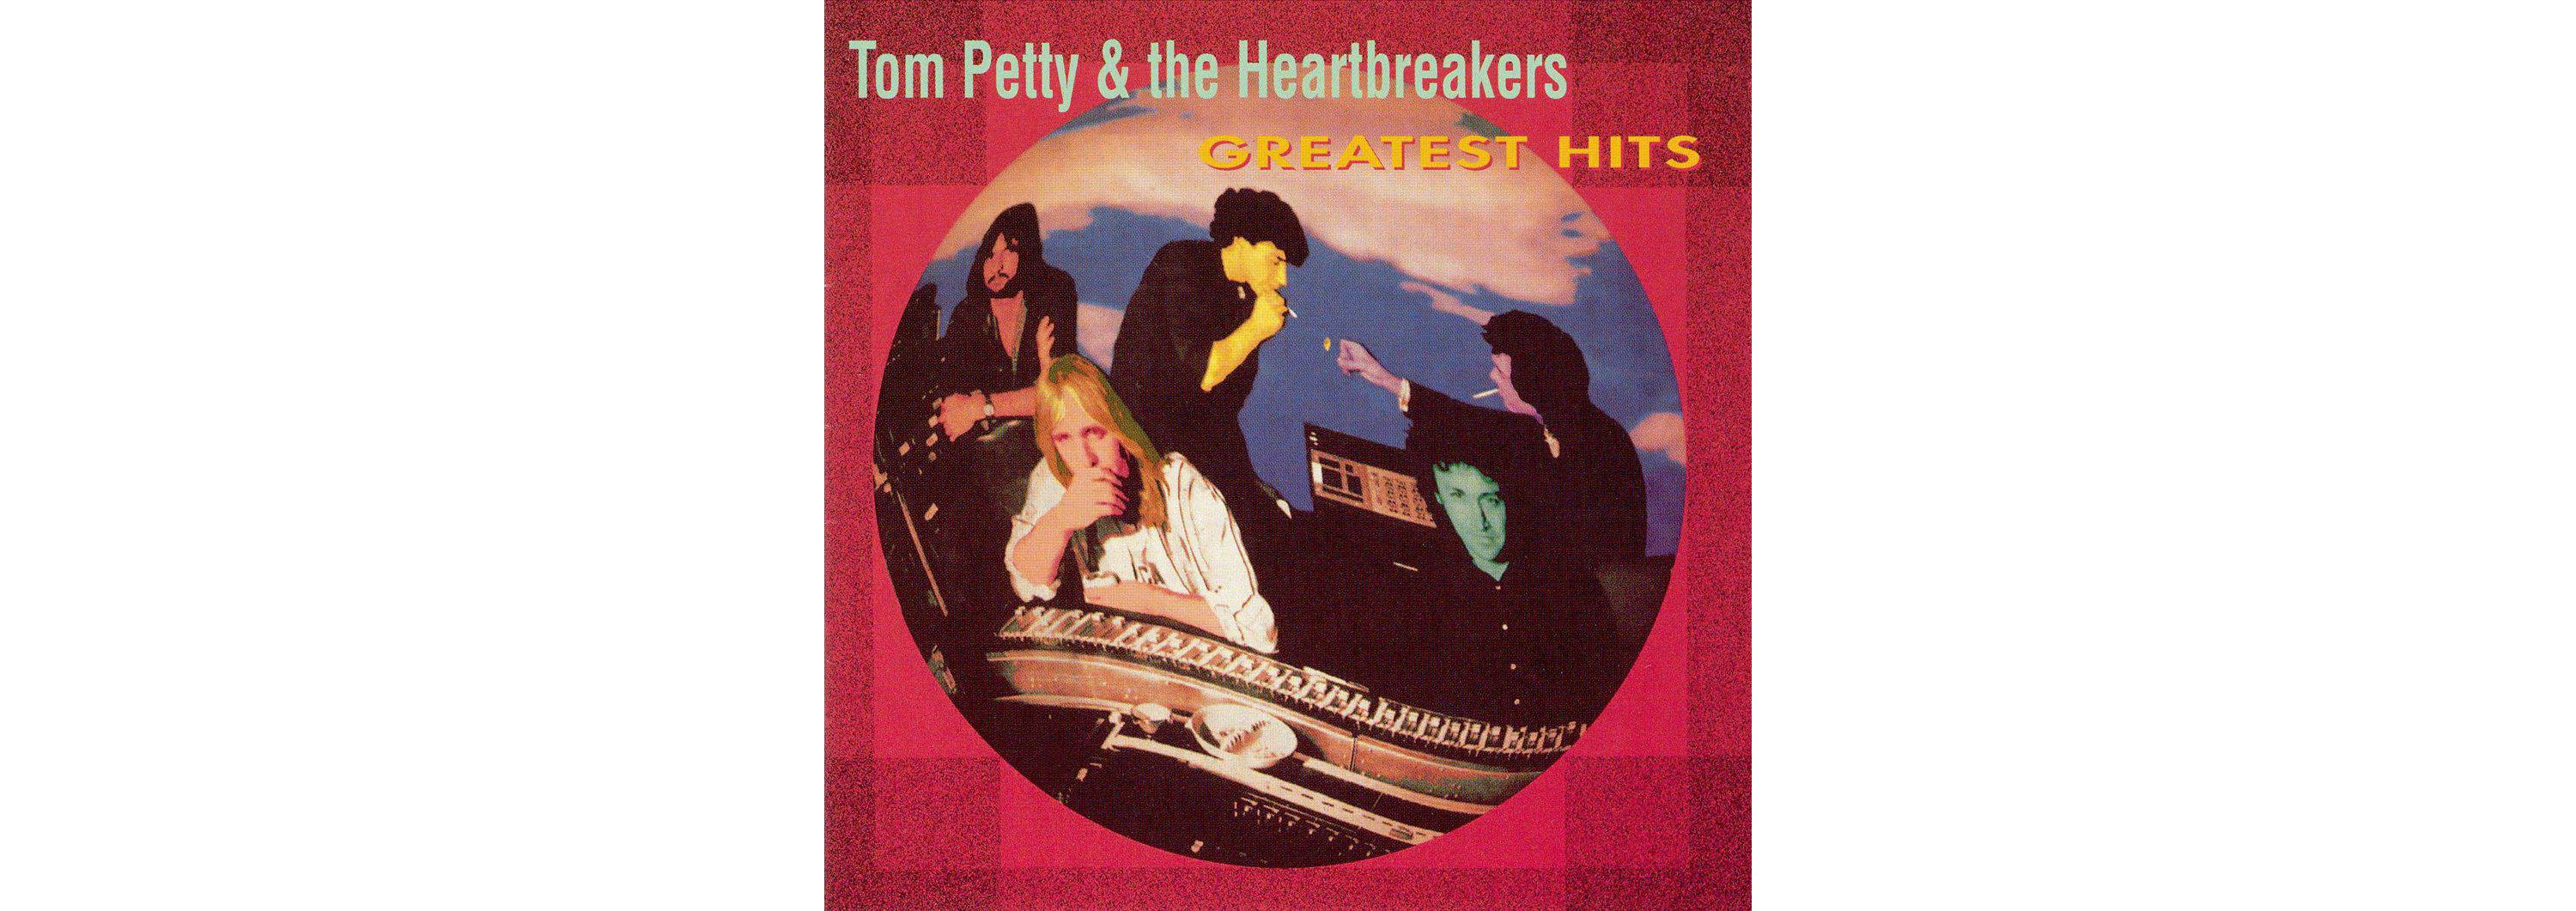 Tom Petty & the Heartbreaks - Greatest Hits (CD)